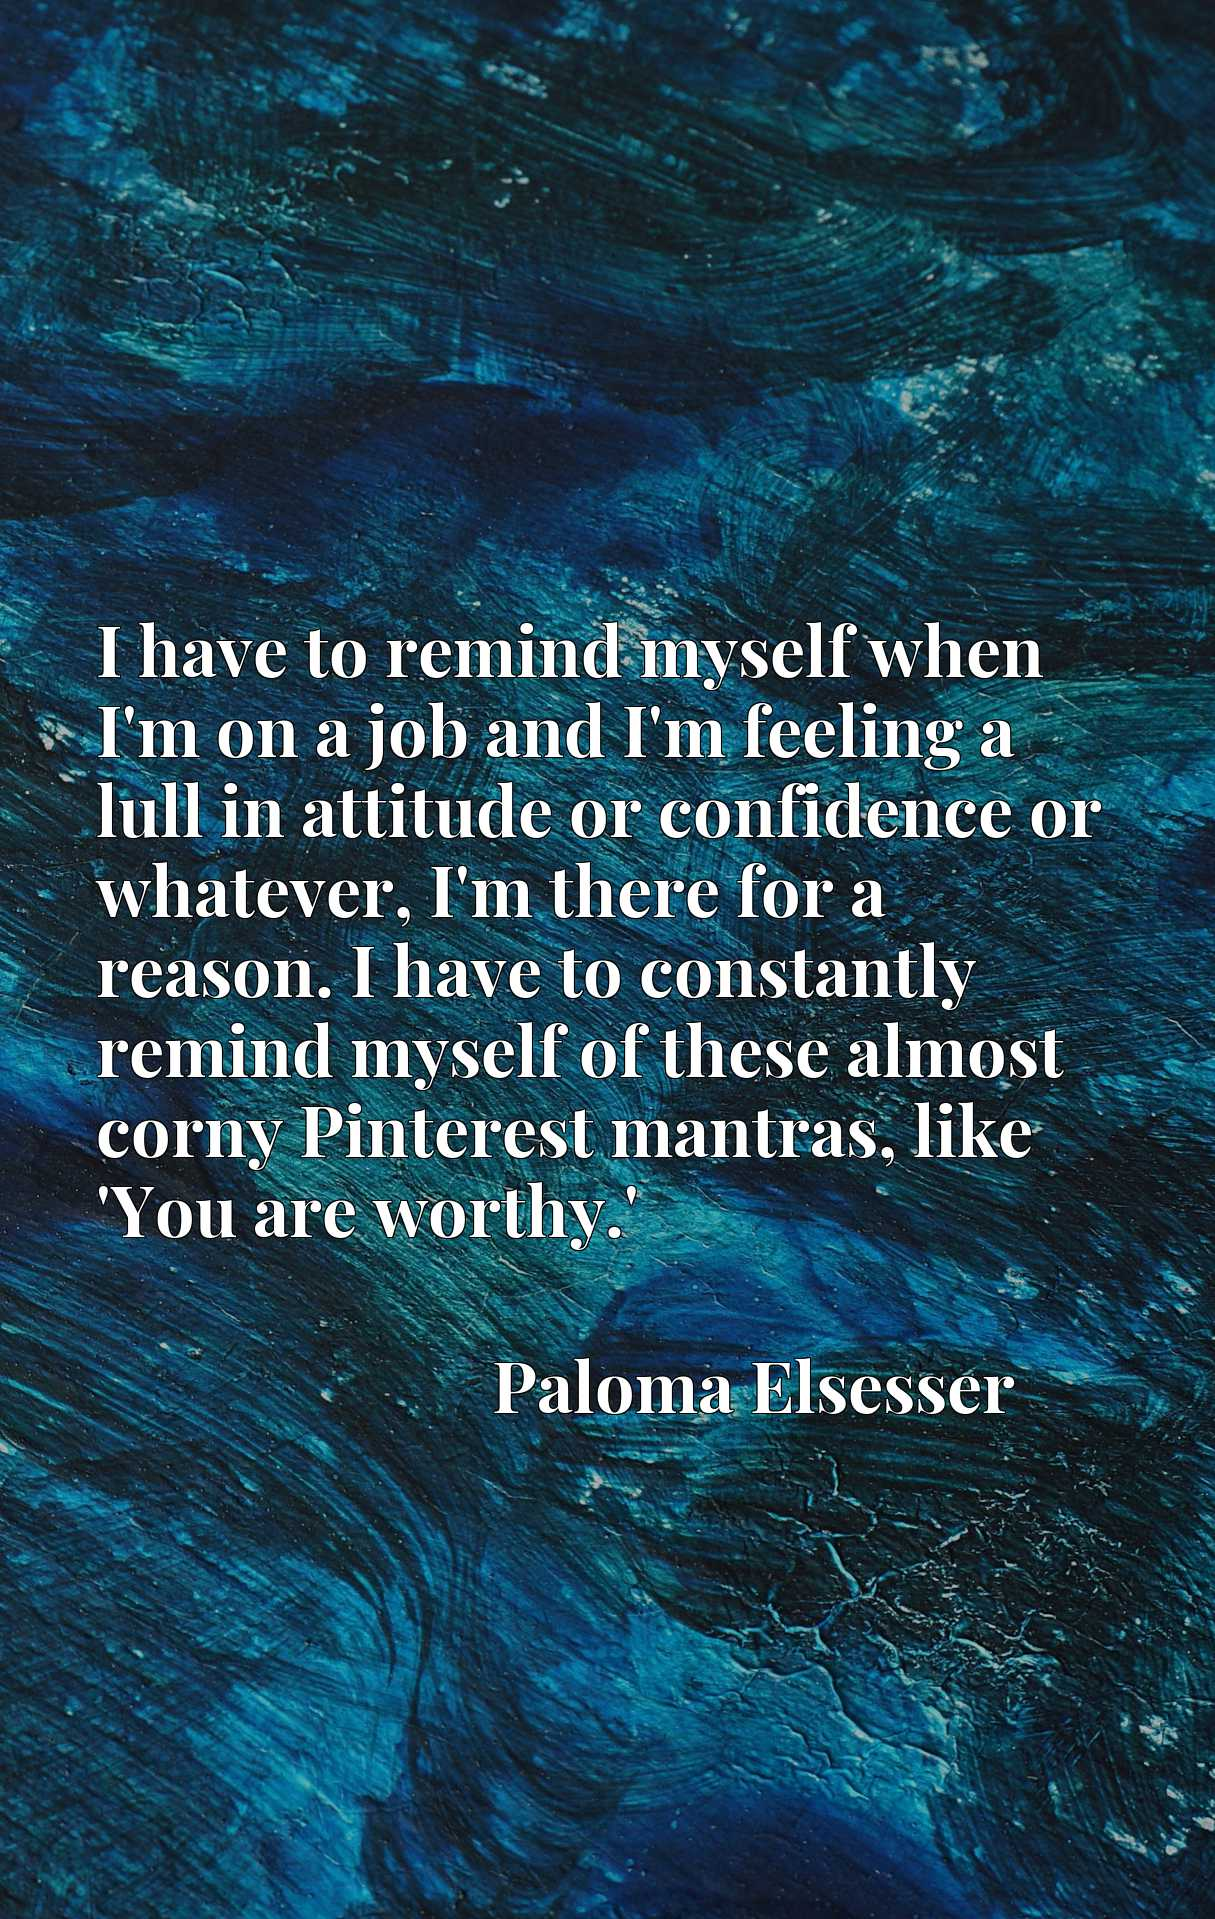 I have to remind myself when I'm on a job and I'm feeling a lull in attitude or confidence or whatever, I'm there for a reason. I have to constantly remind myself of these almost corny Pinterest mantras, like 'You are worthy.'